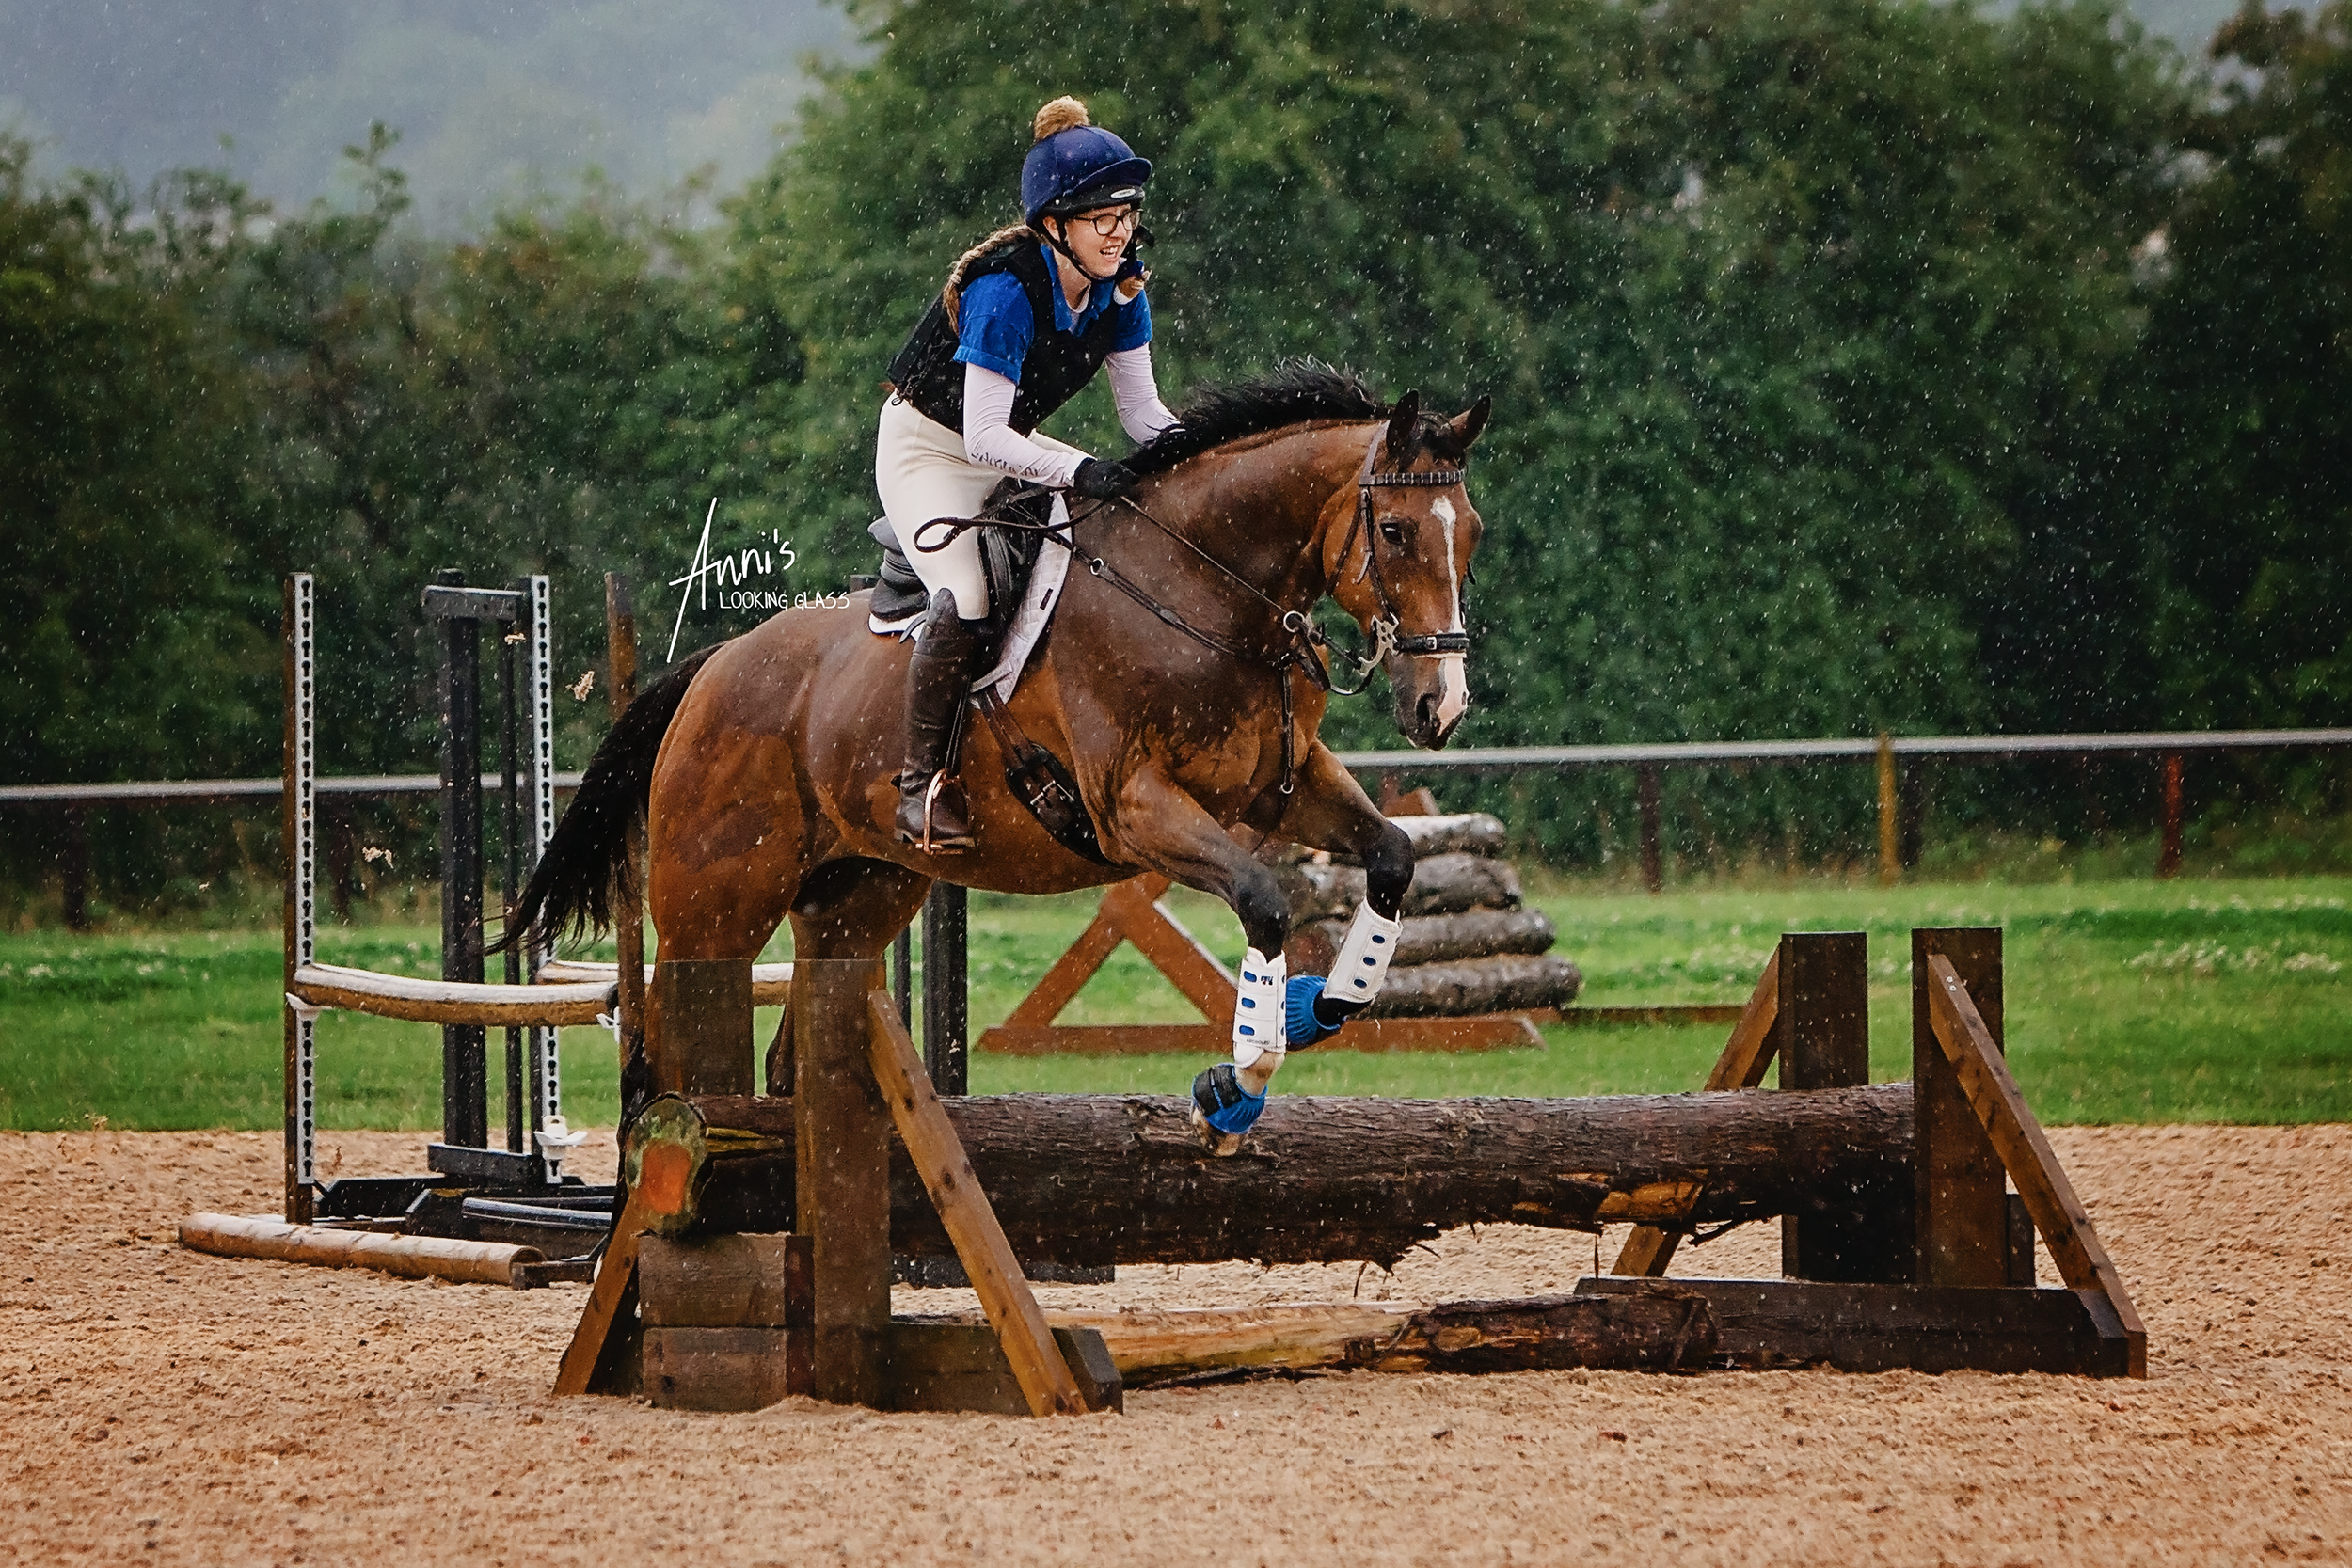 eventing-equine-horse-portrait-leicestershire.jpg